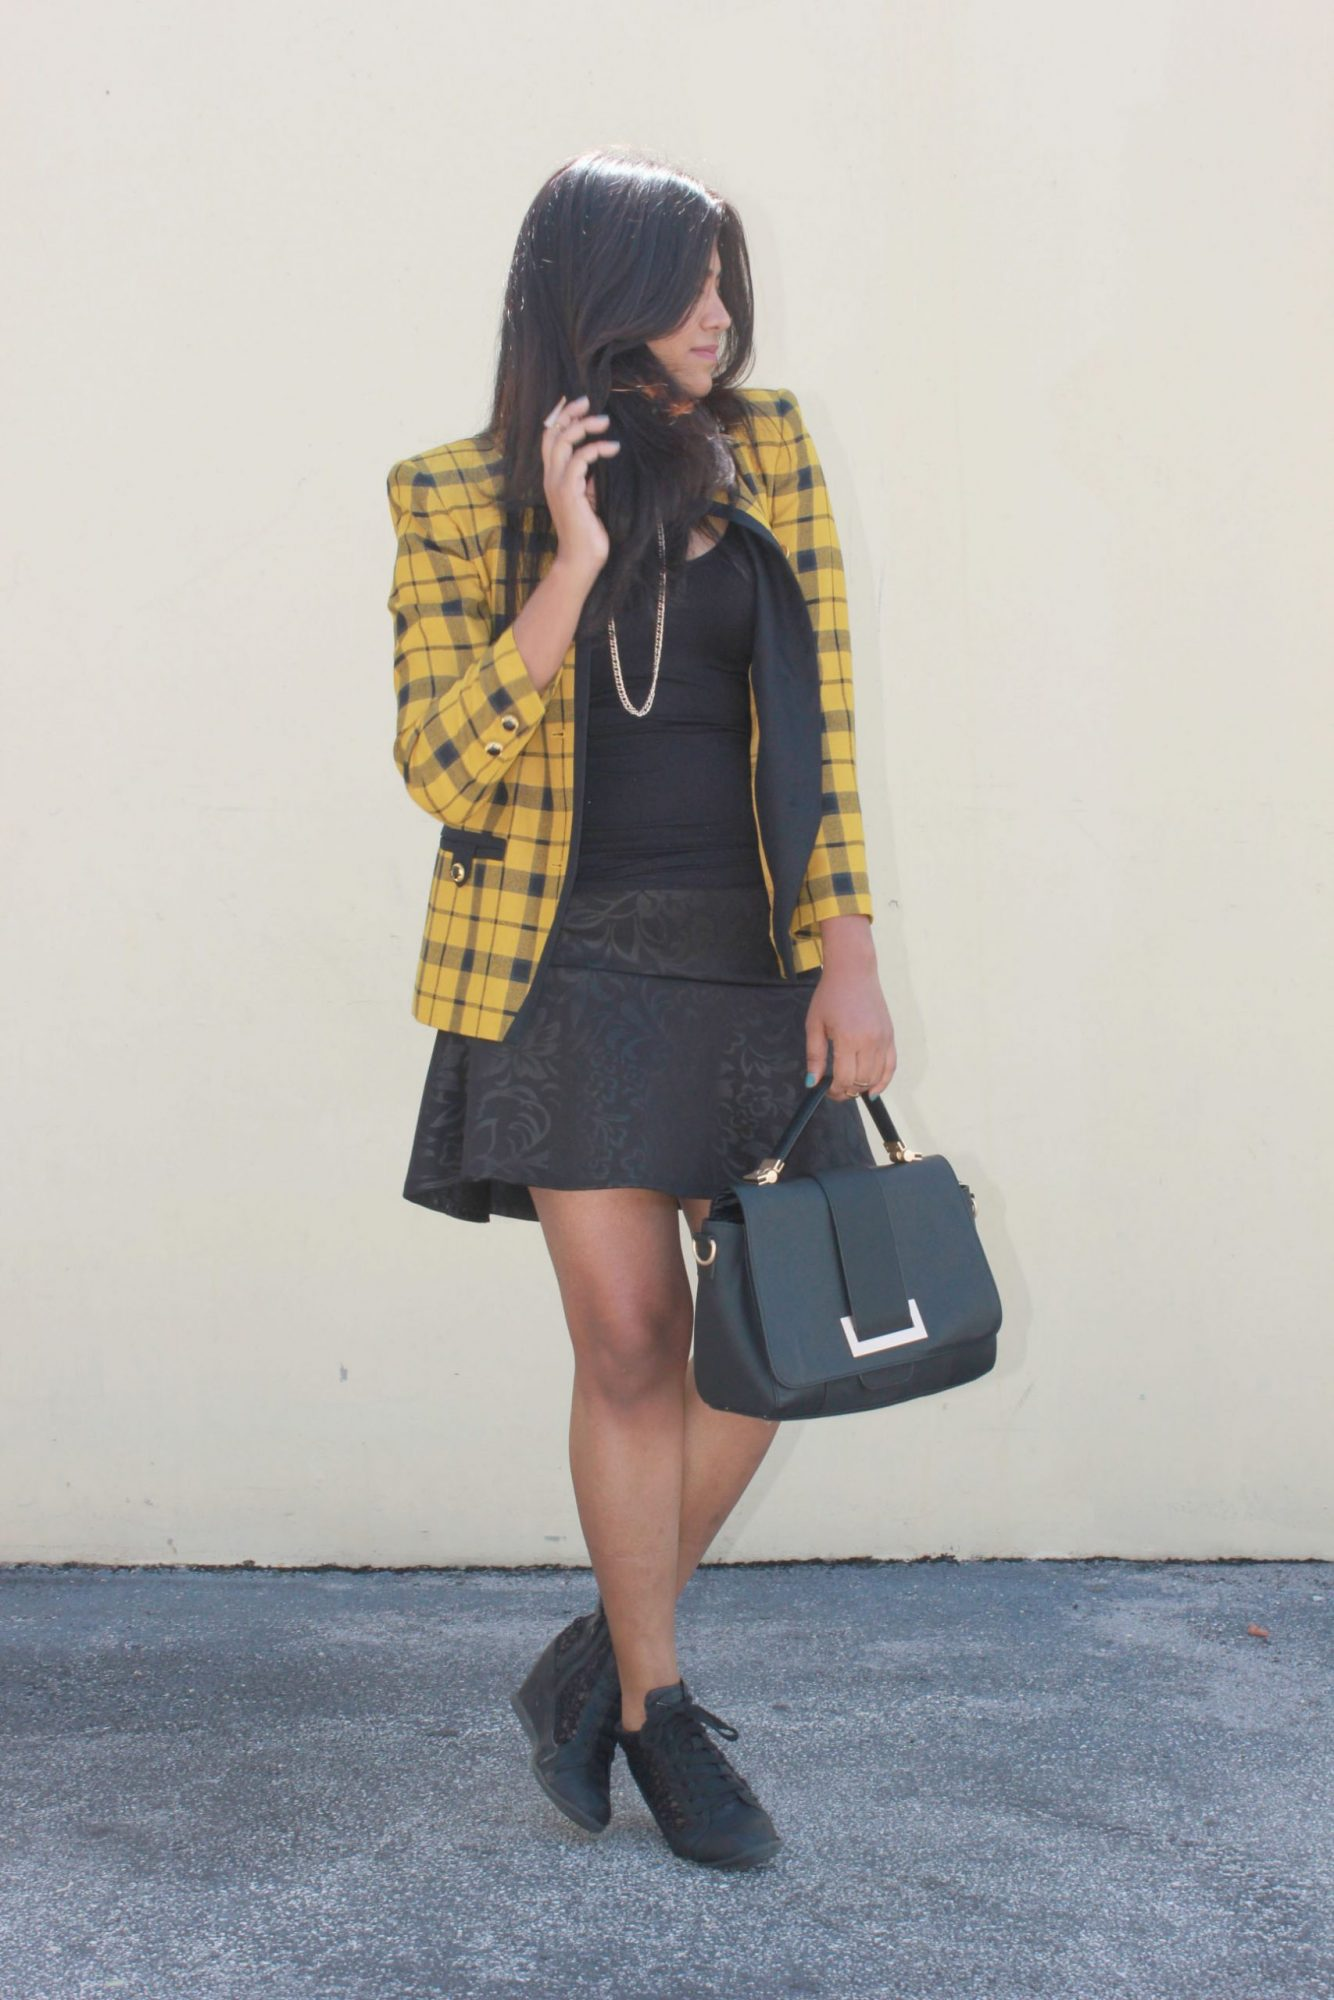 Miami Fashion Blogger Plaid Yello Jacket WIW